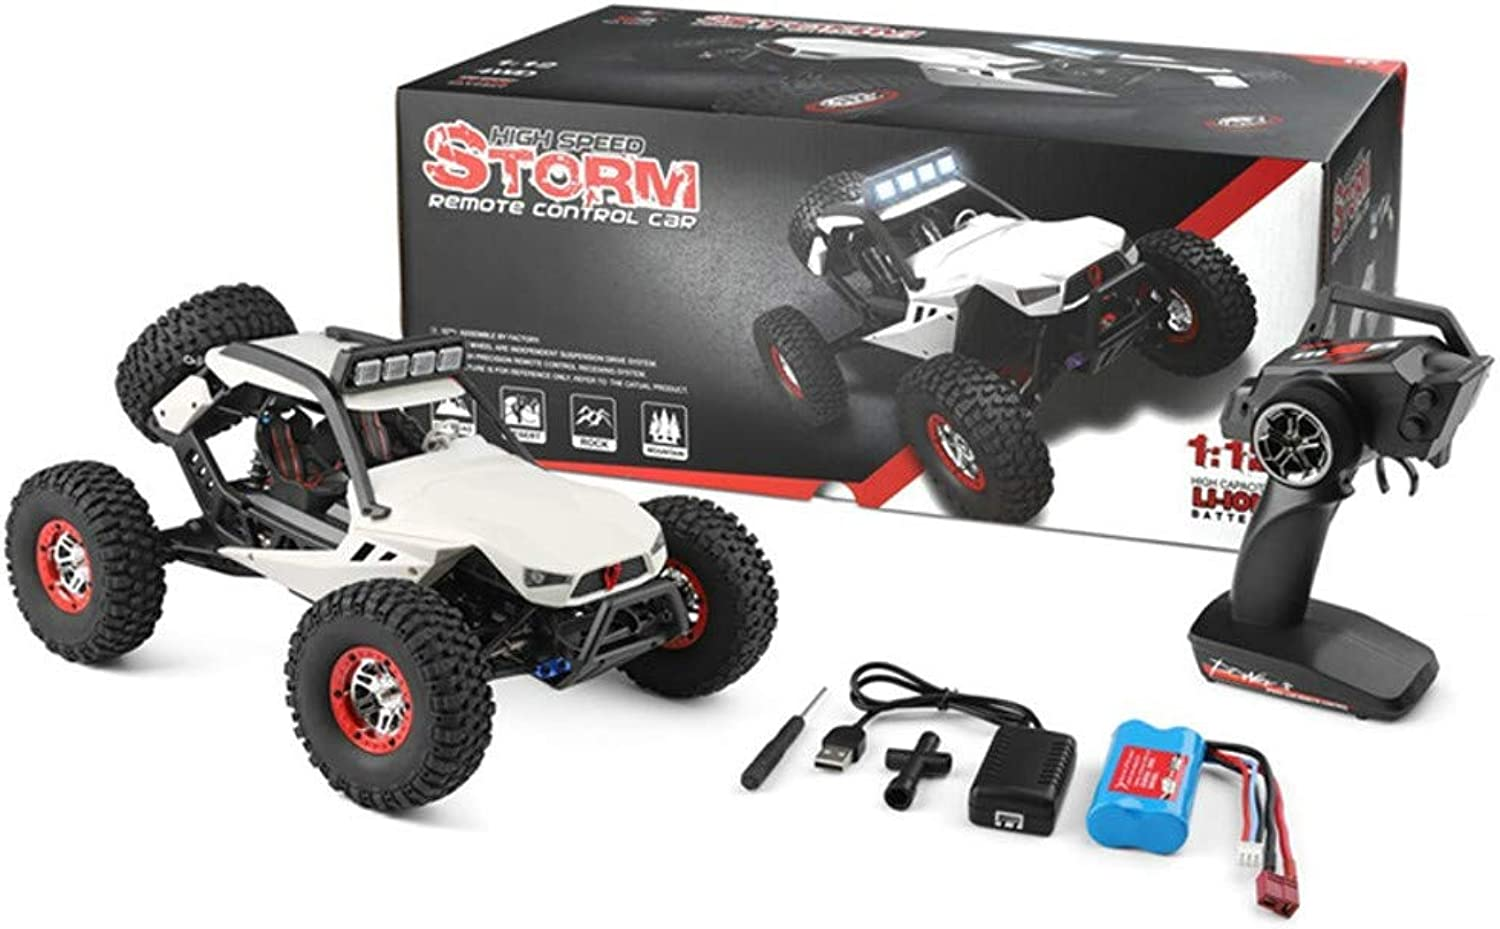 SingularPoint RC Car, Wl 540Brush Motor High Speed 40km h 1 12 4WD 2.4GHz Radio Remote Control Racing Truck